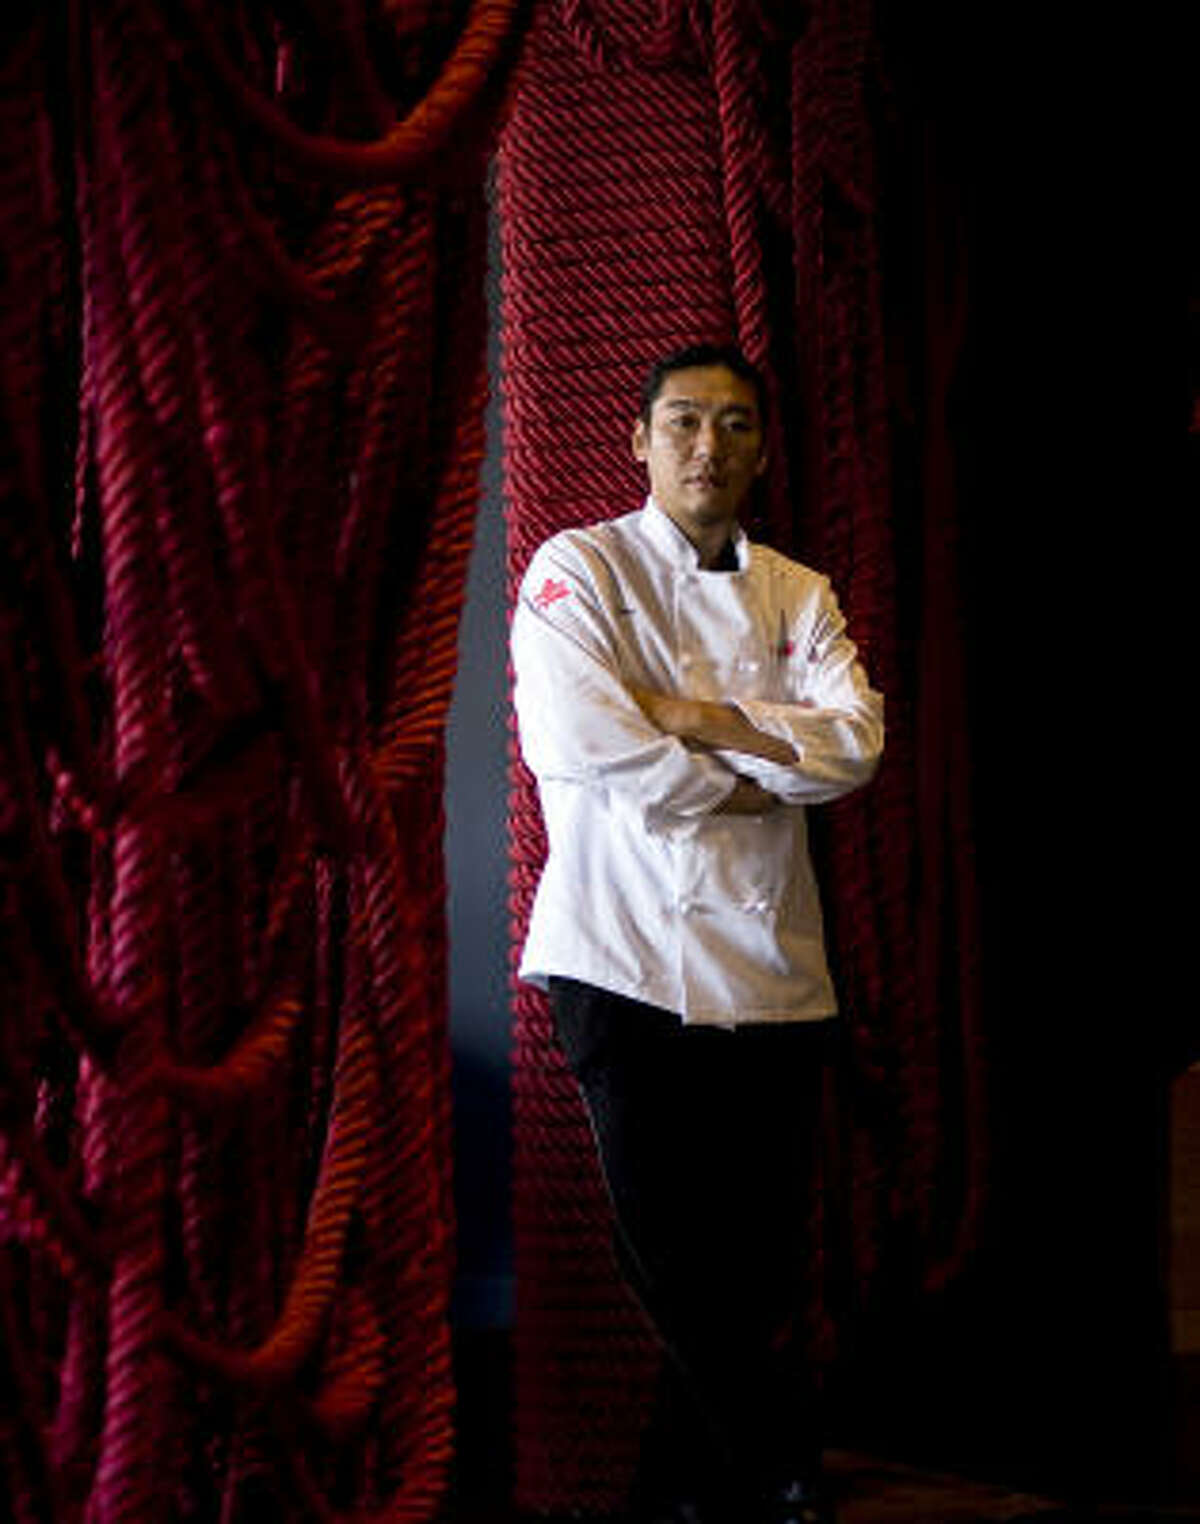 Chef Taka Sekiguchi hopes to rope in foodies with Sushi Raku's inventive menu.